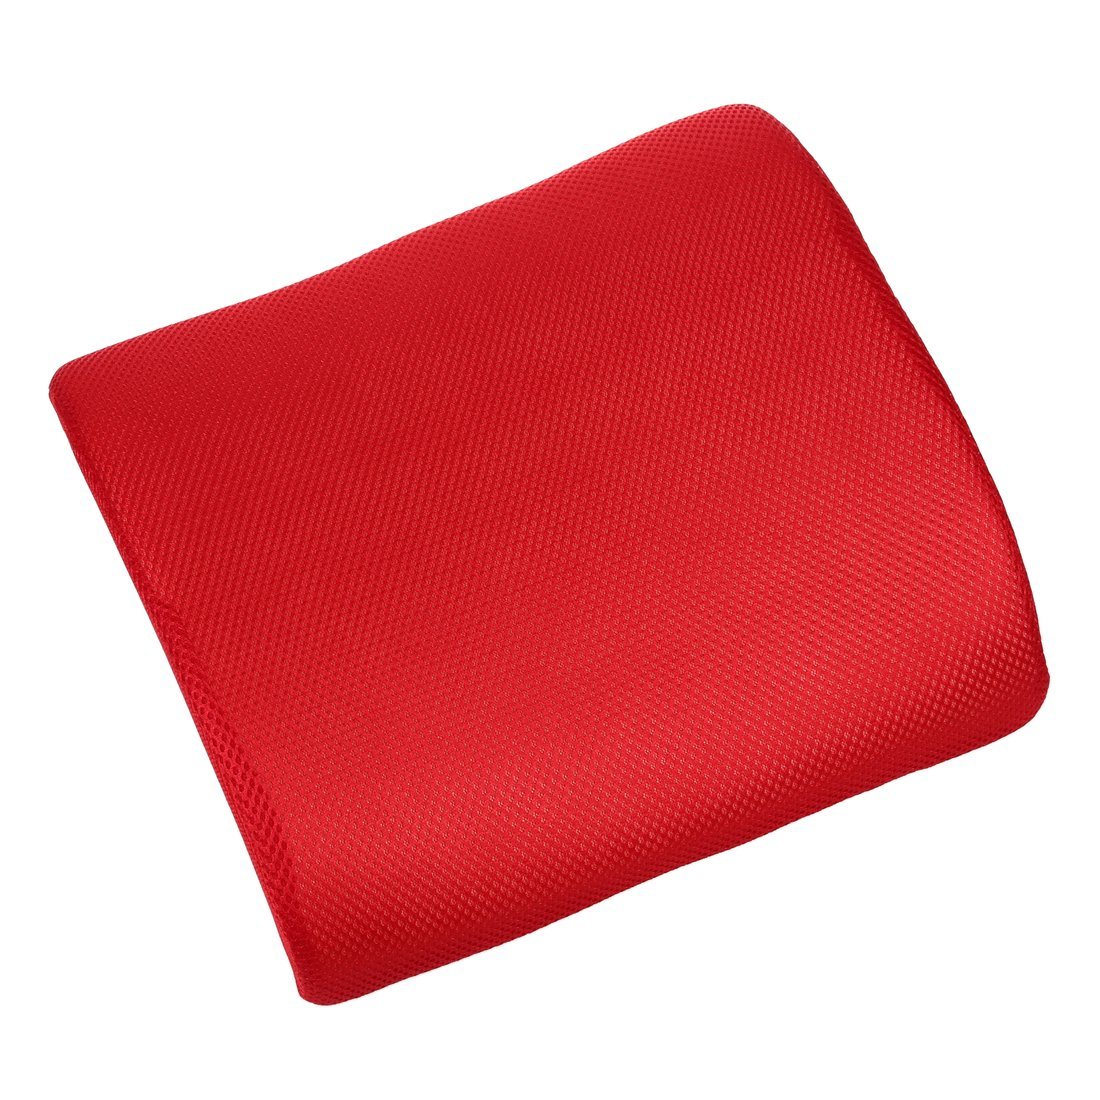 Memory Foam Seat Chair - SODIAL(R) Car Office Home Memory Foam Seat Chair Lumbar Back Support Cushion Pillow Red SODIAL (R) 059210A3